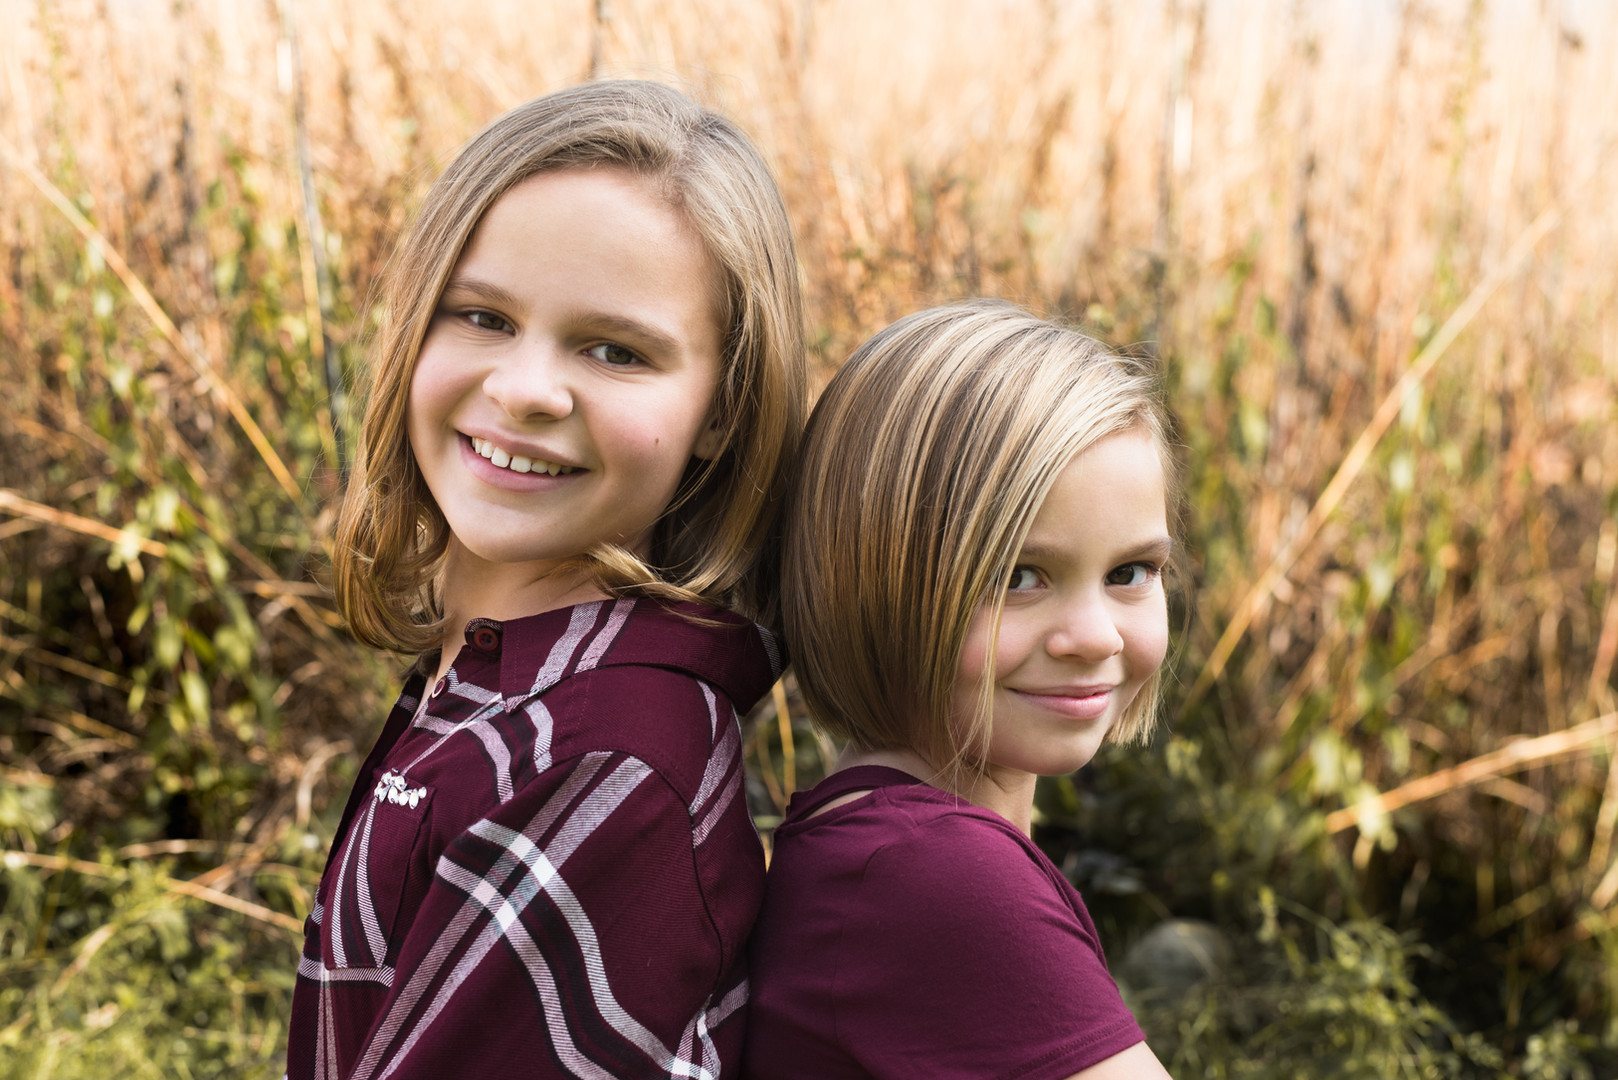 Kids smiling back to back in a field